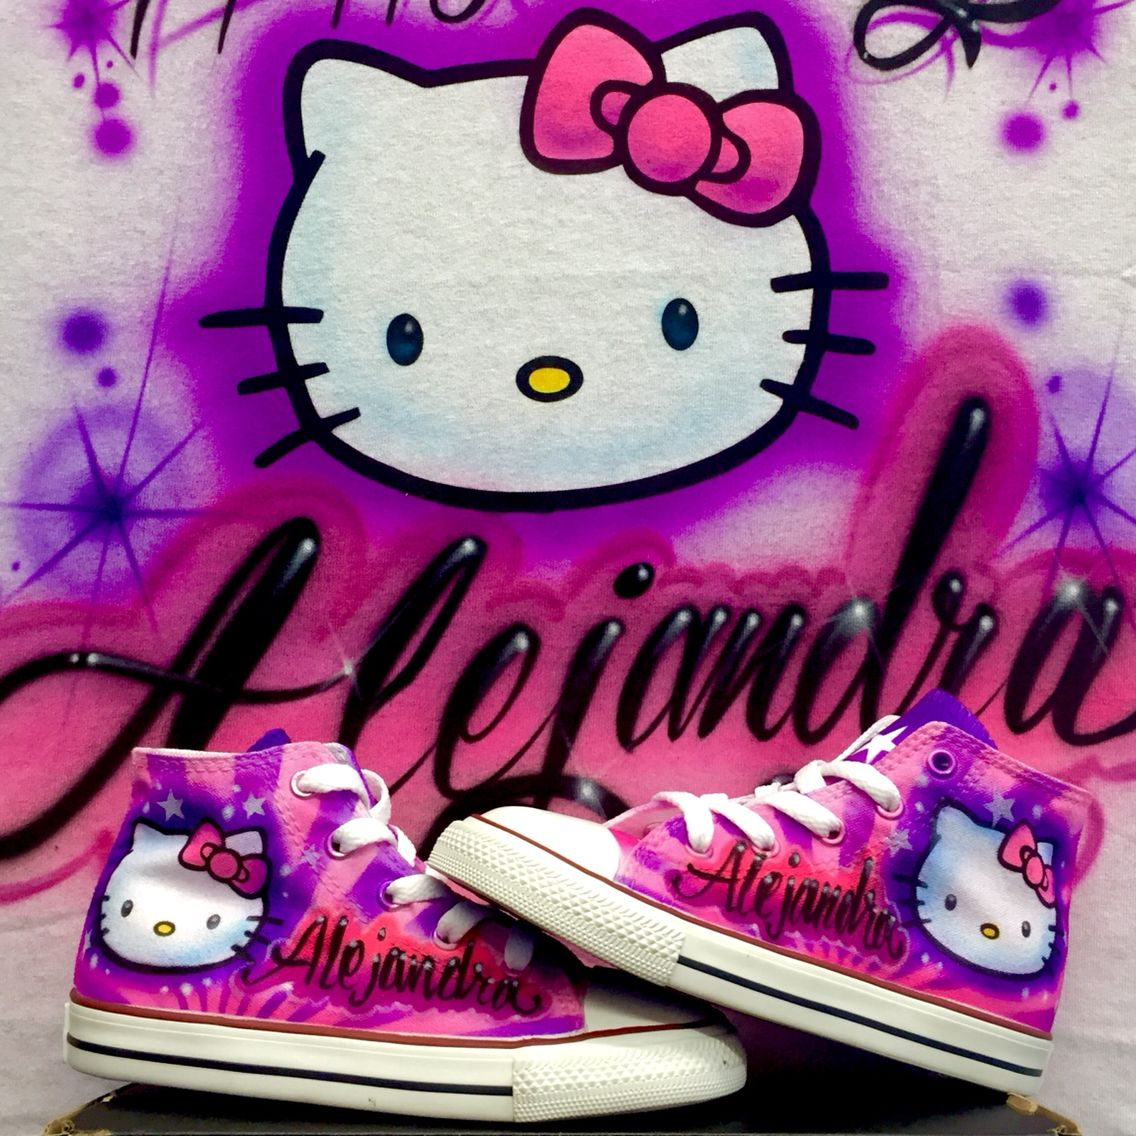 Hello Kitty Set Shirt And Shoes Fell Free To Share This Once Again Somebody Is Having A Very Happy Birthday Hellokittyartbyherby Mybirthday Airbrush